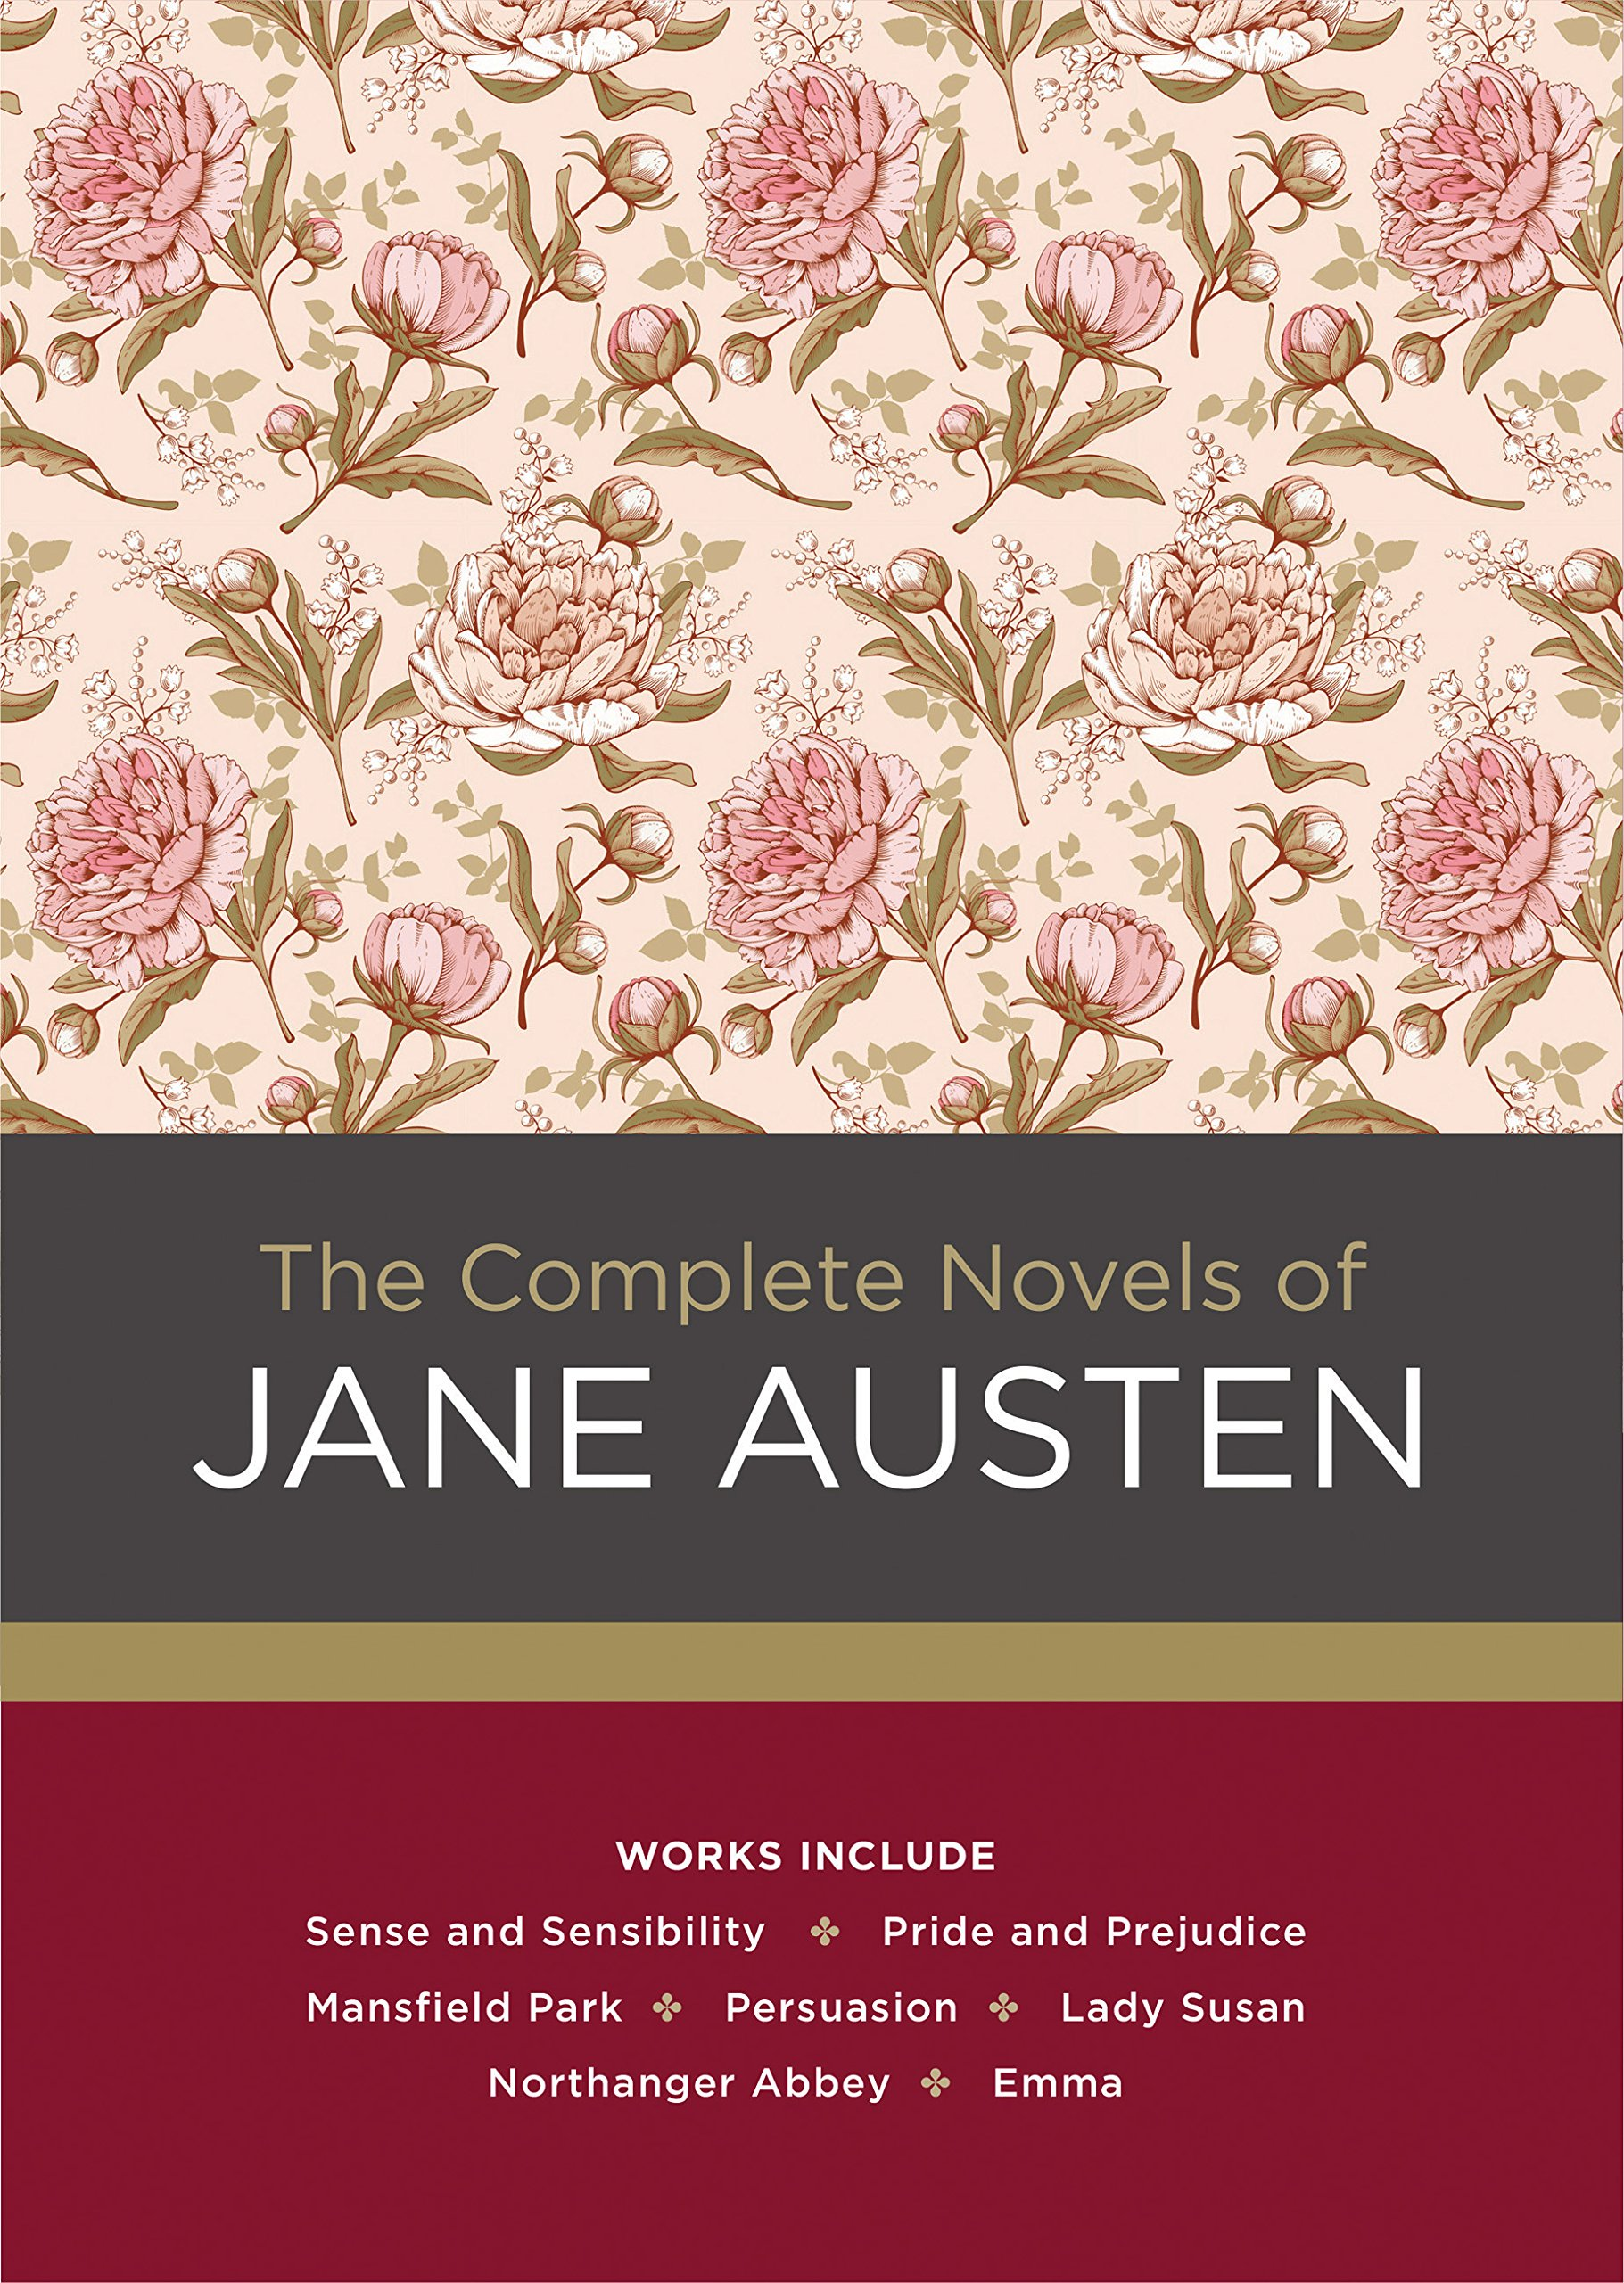 Image result for the complete works of jane austen